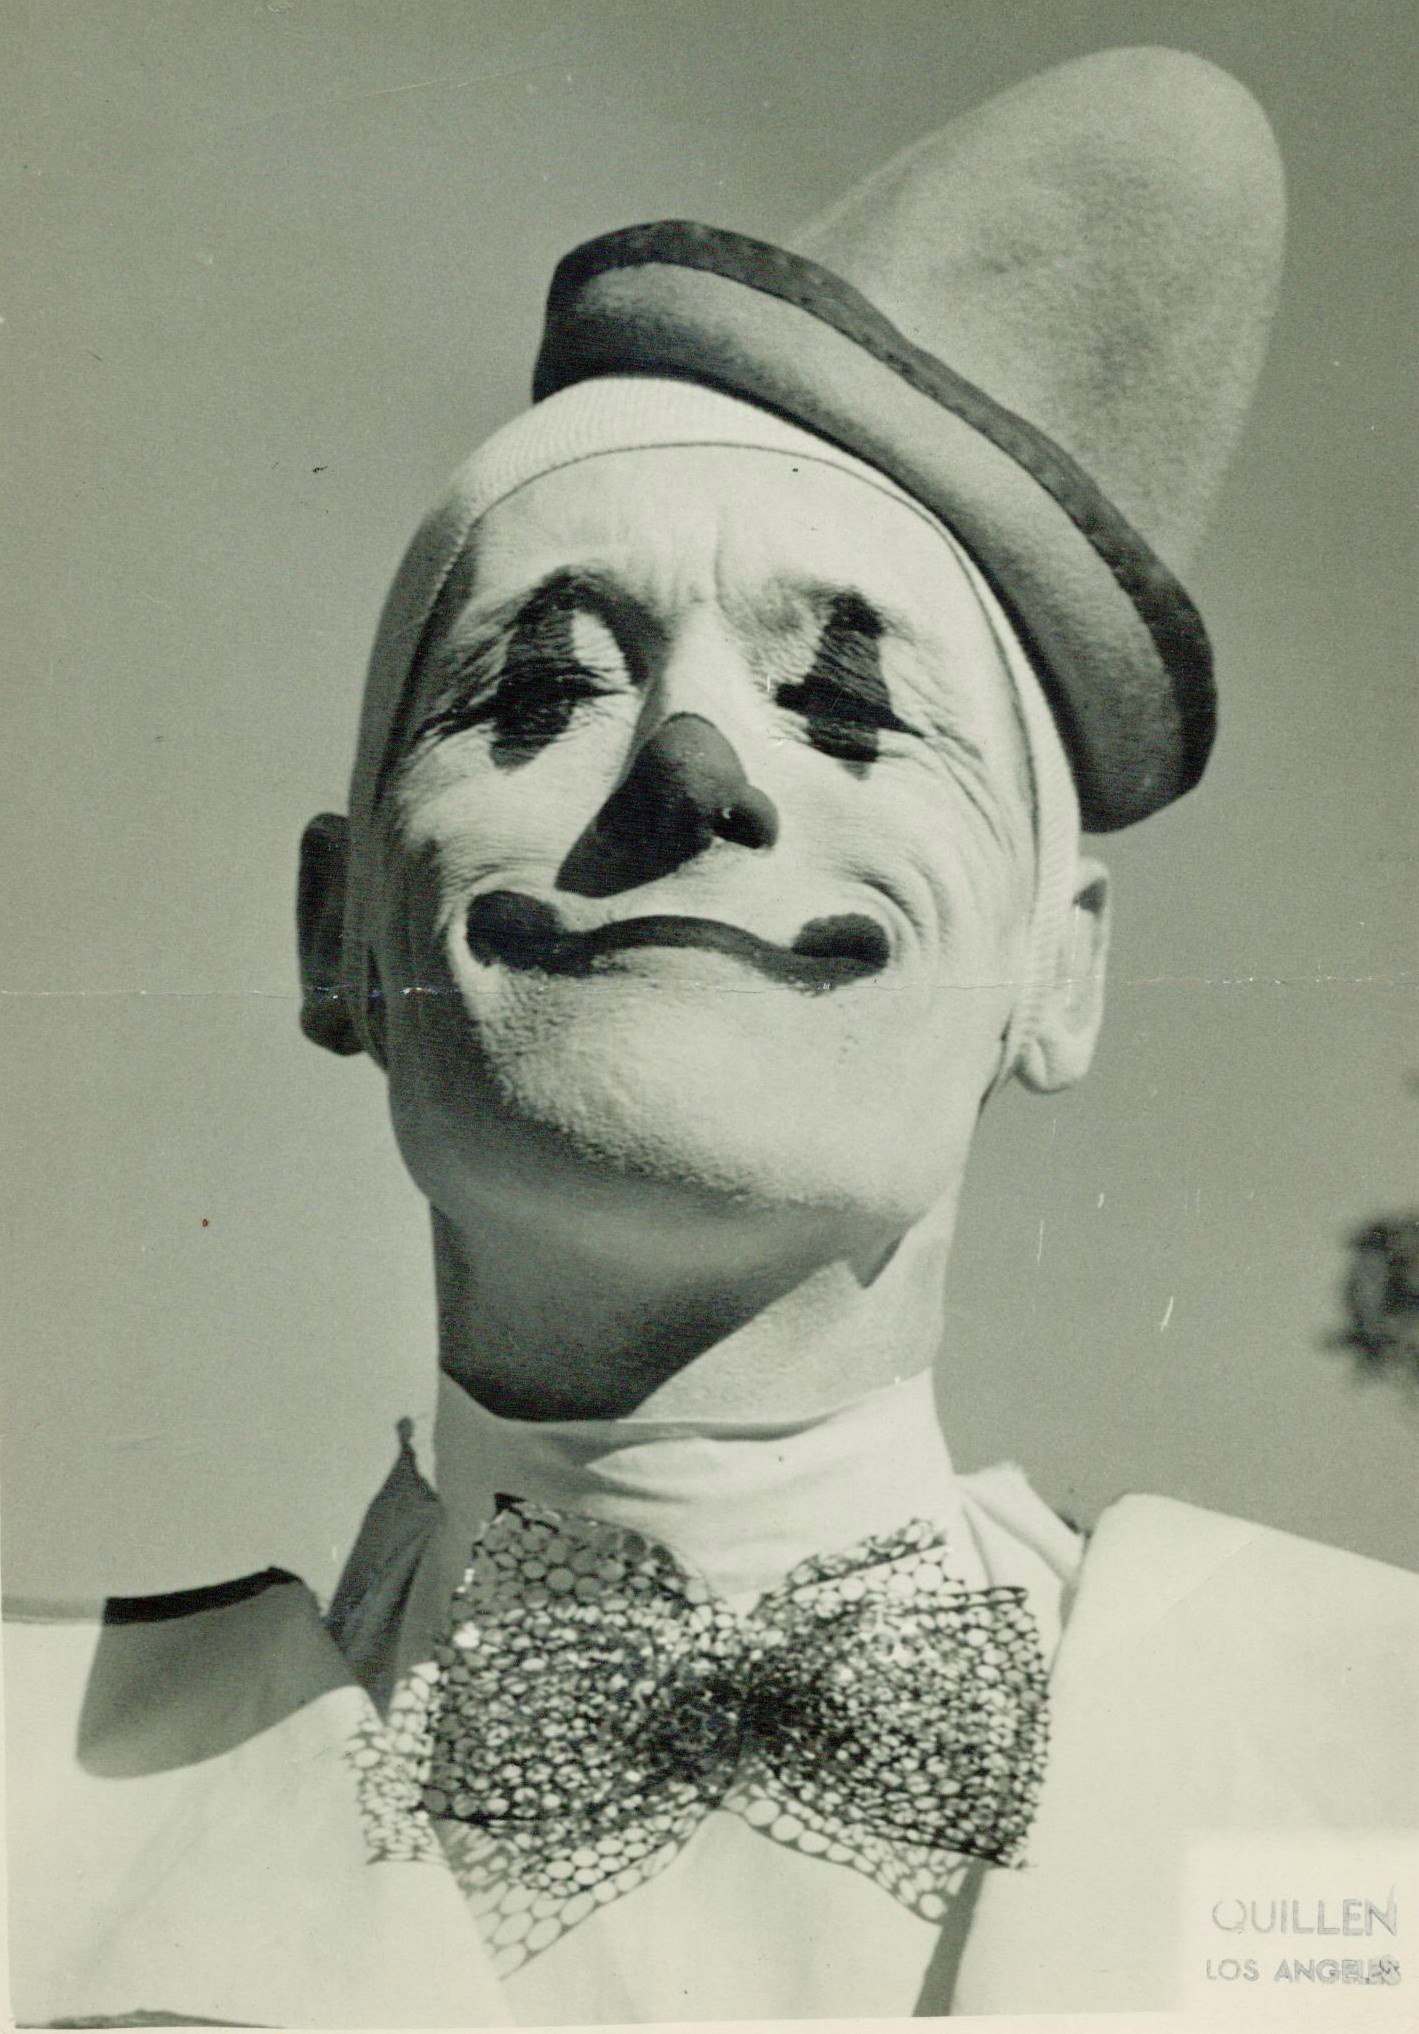 79 Best Images About Ocr  As 2016  Clown On Pinterest  Circus Clown,  Scary Clowns And Opera House